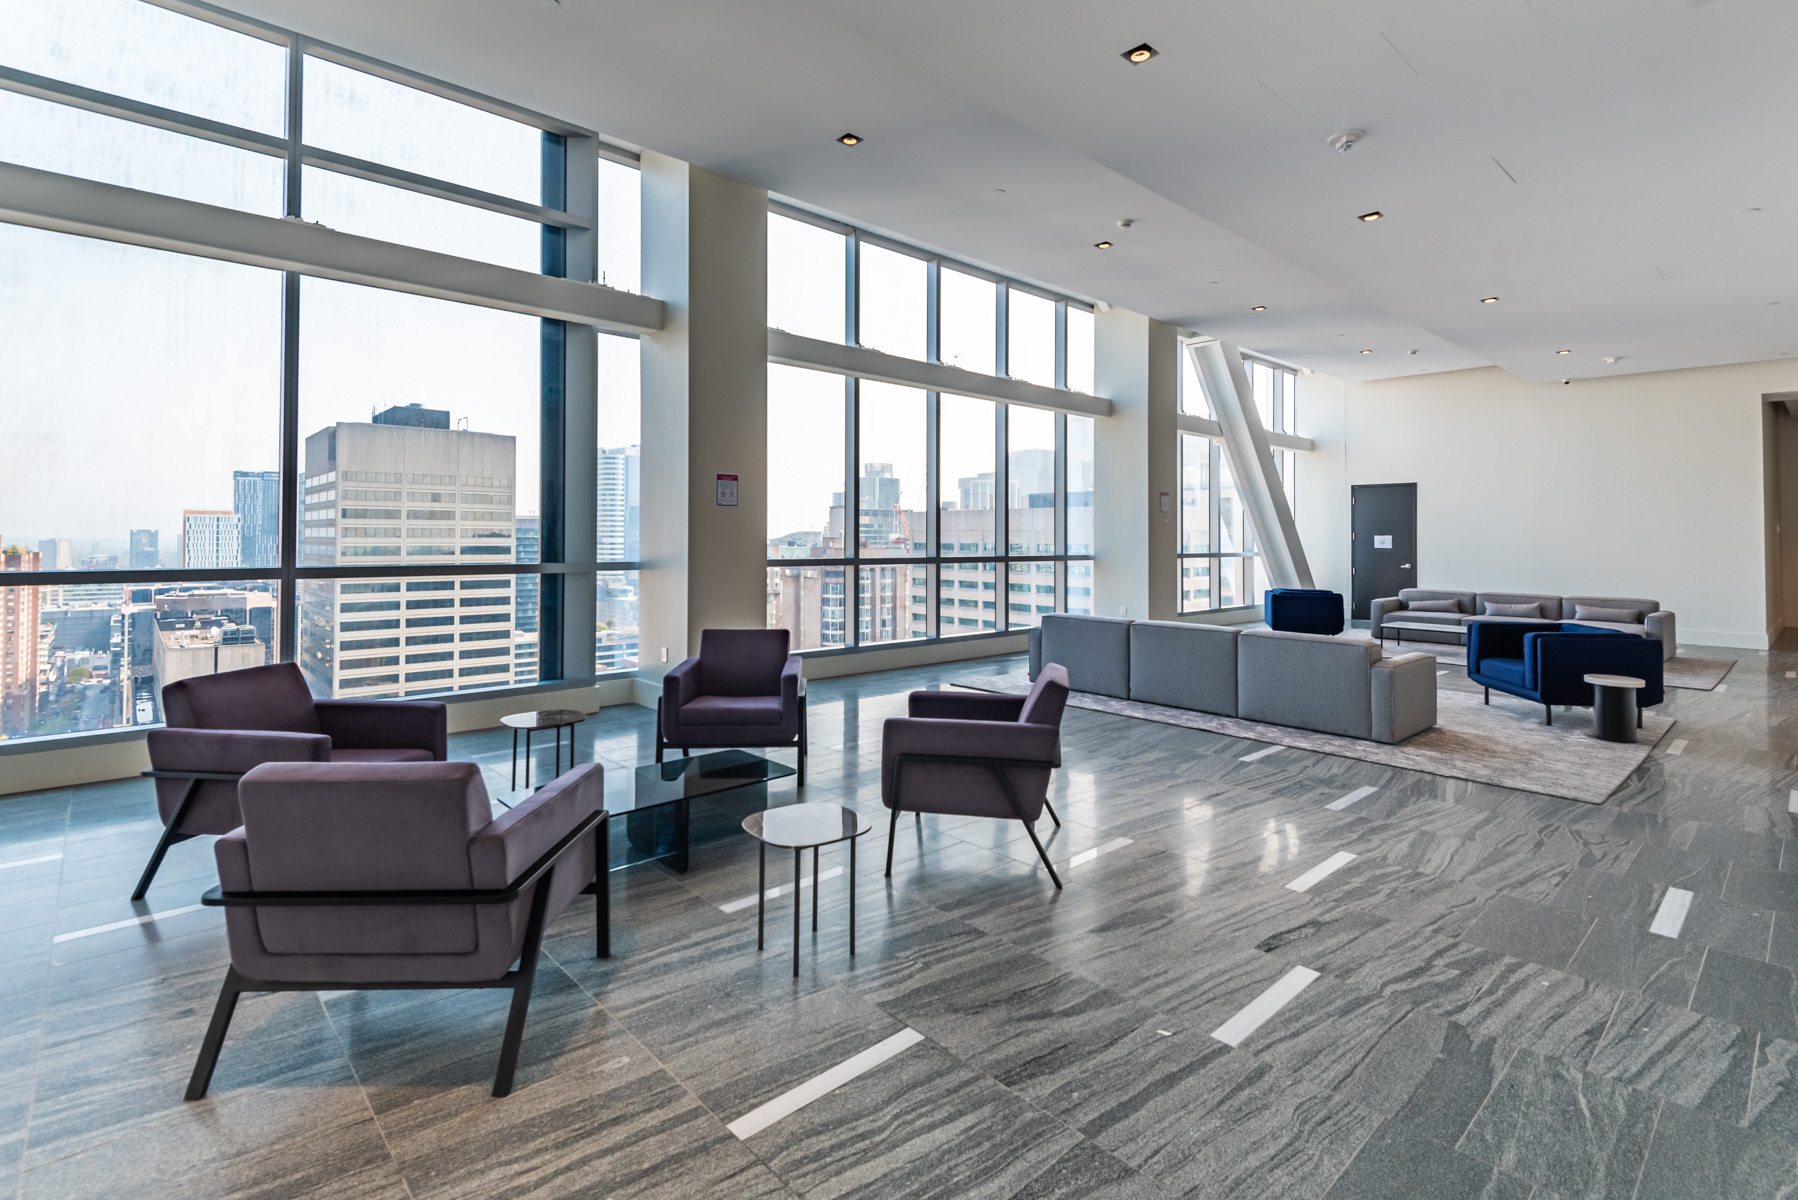 Visitor lounge at 488 University Ave with sofas and tables.